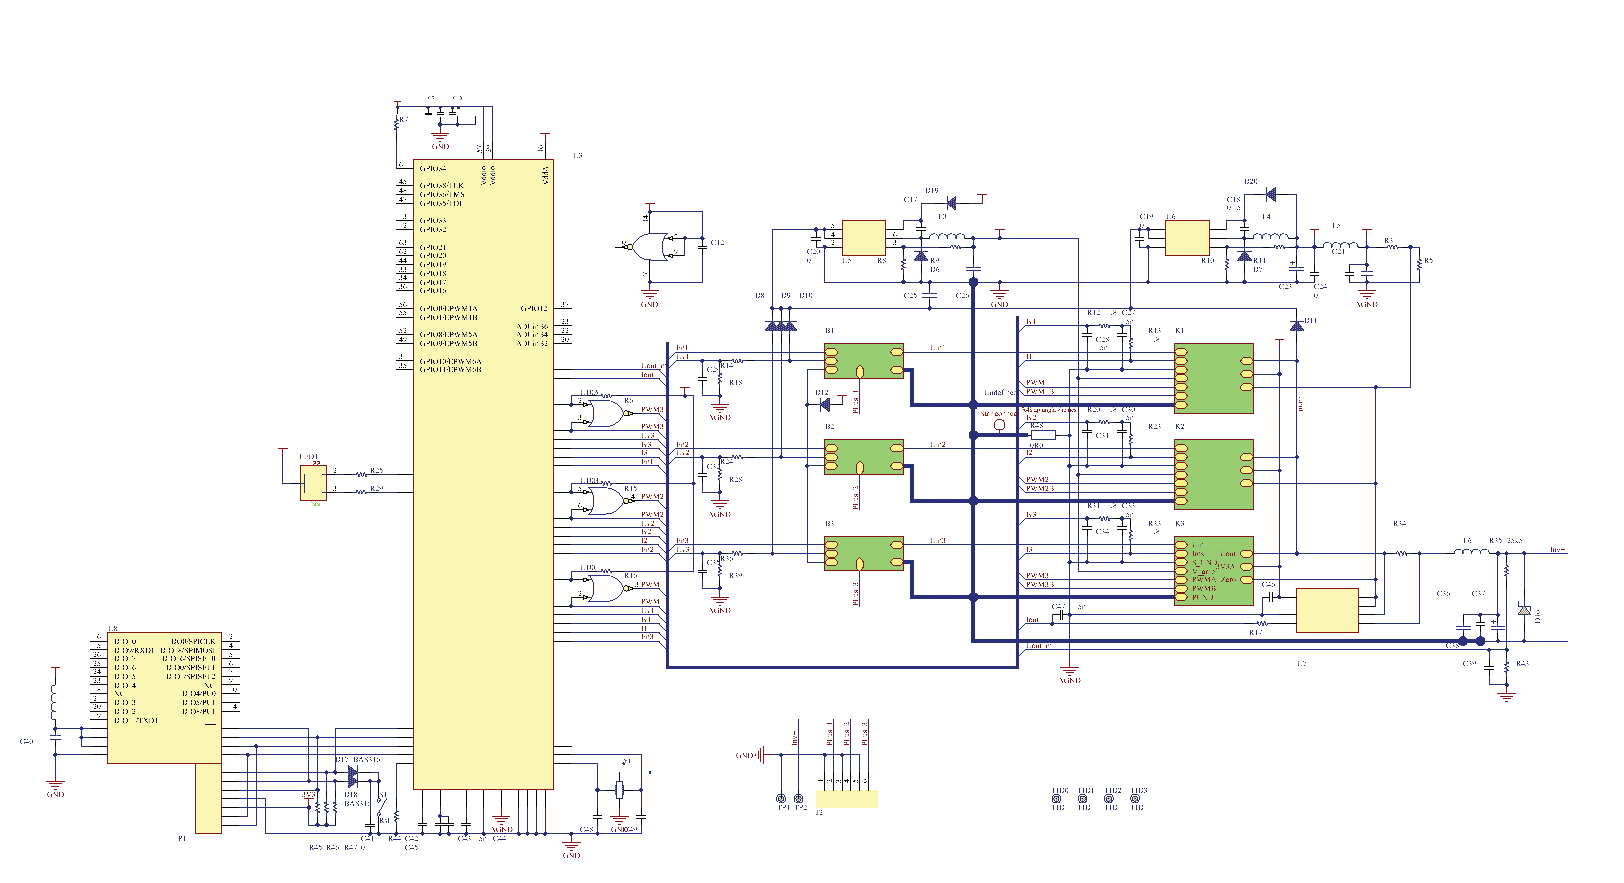 MPPK_circuit_diagram_no_component